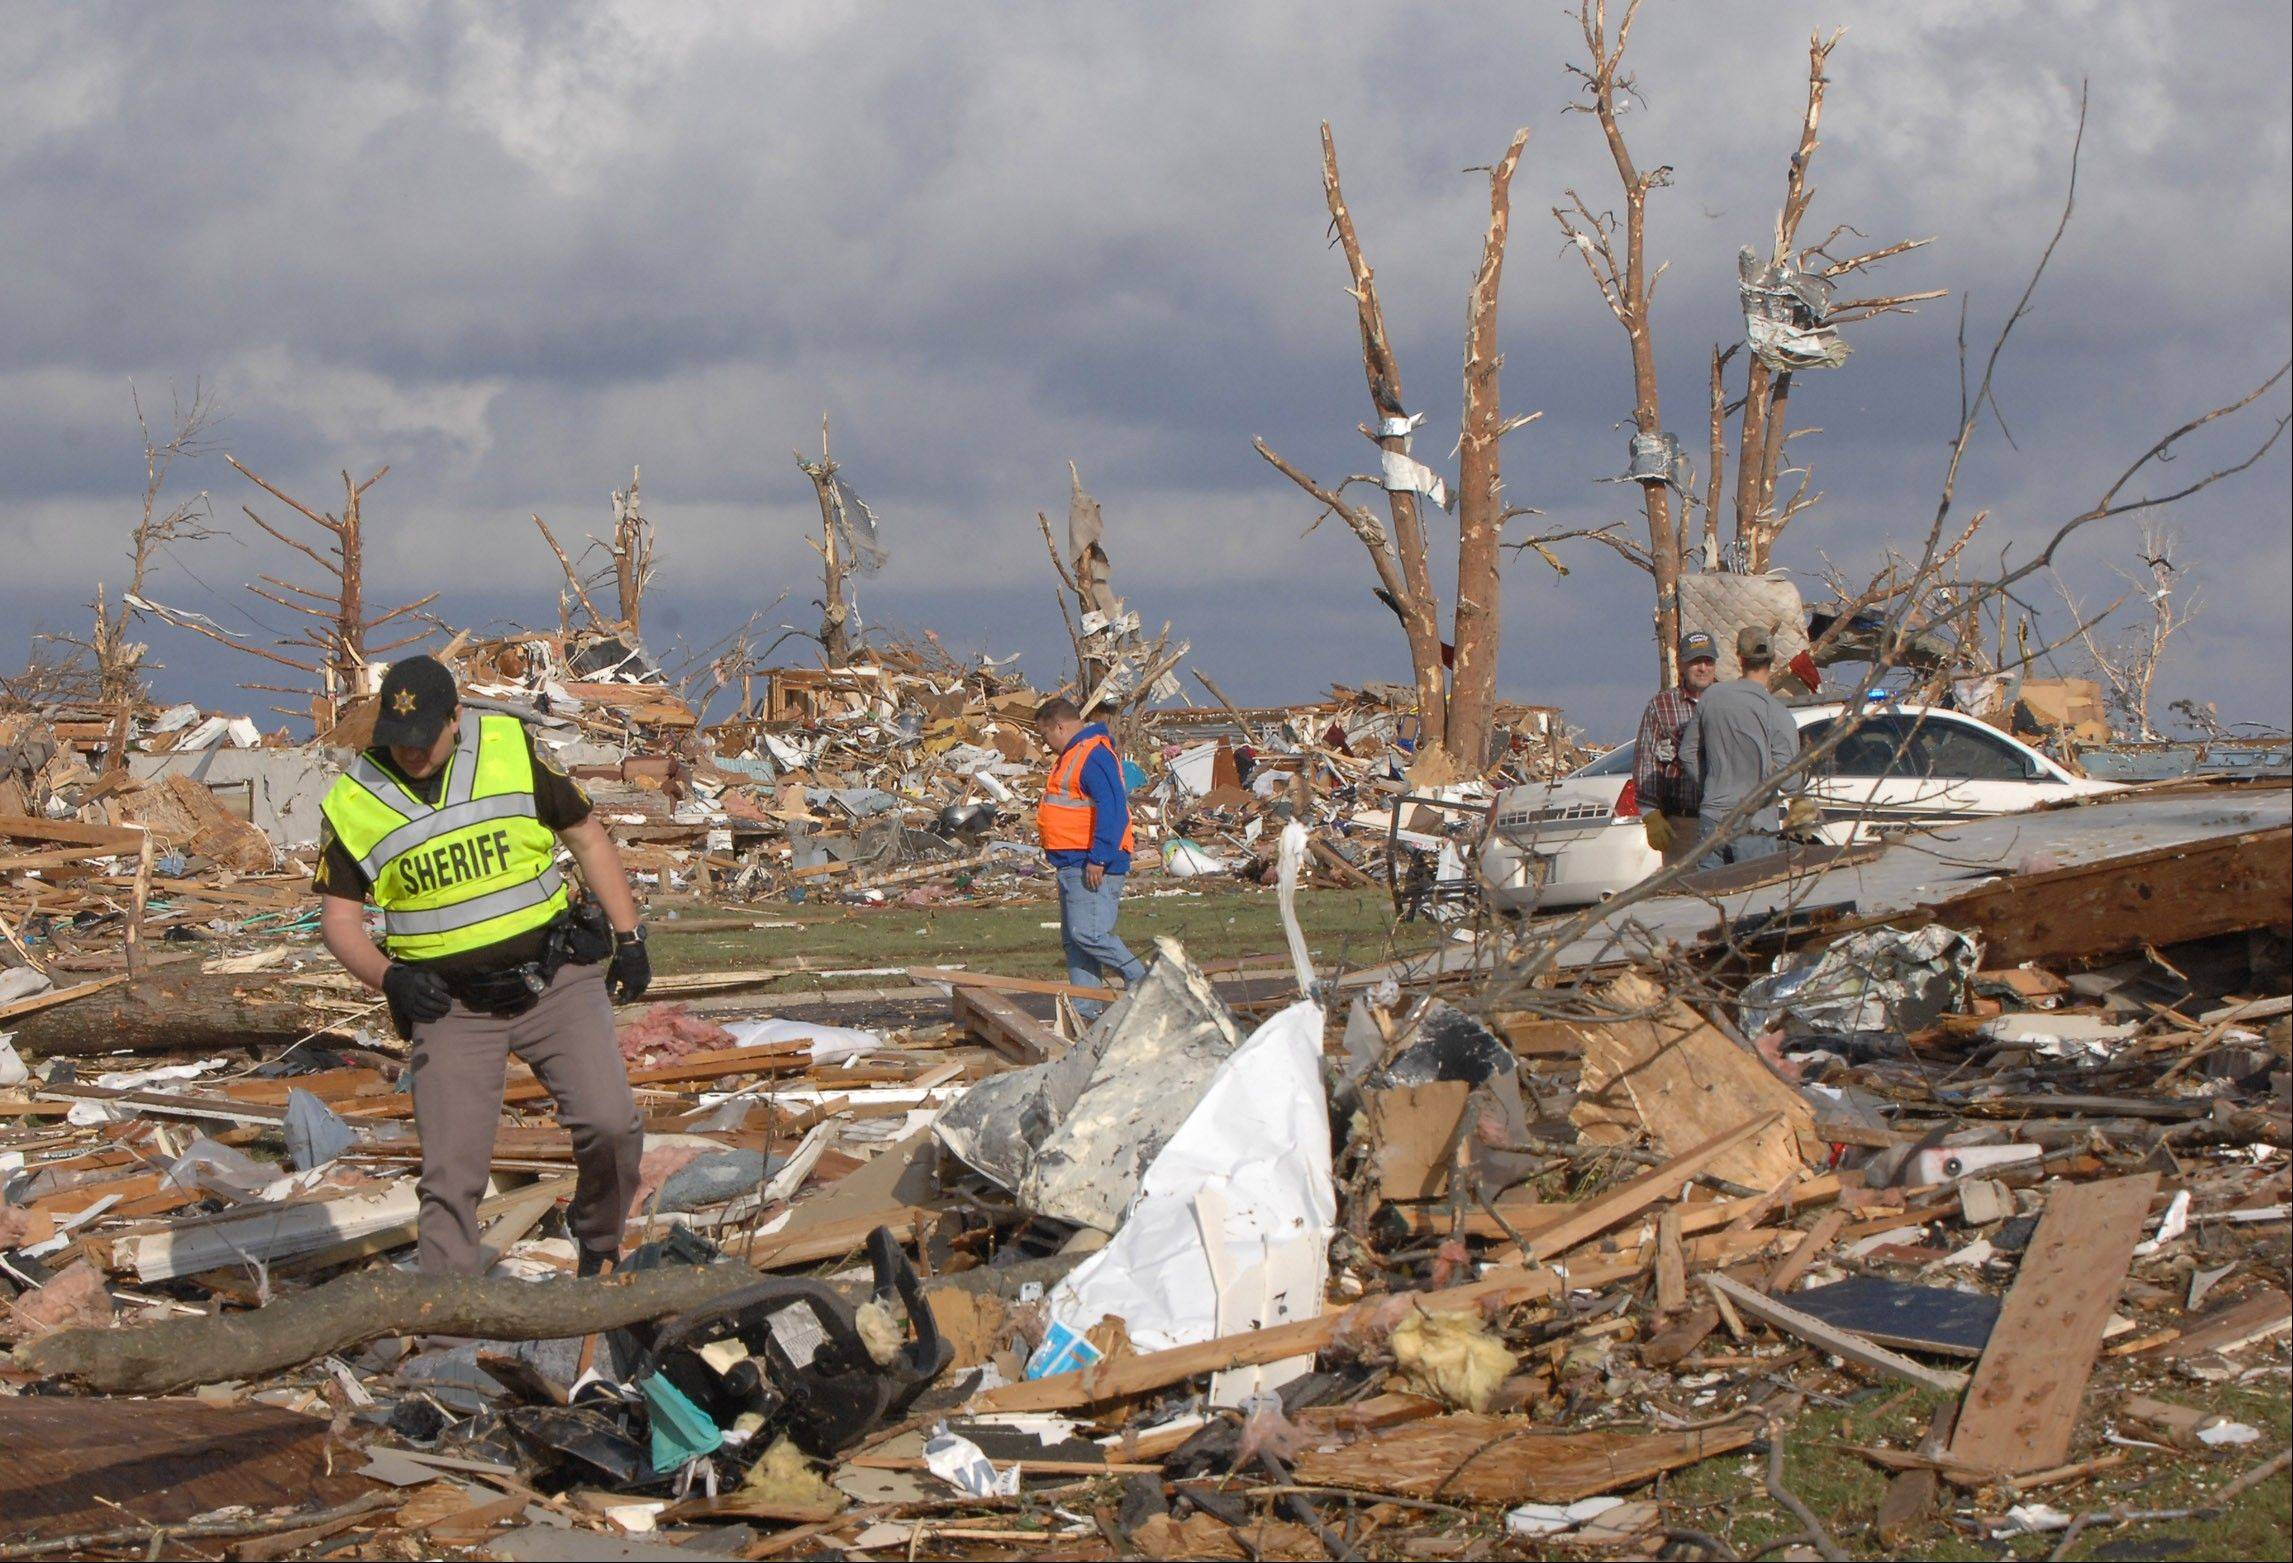 A deputy sergeant with the Tazewell County sheriff's department walks through debris Sunday in the Devonshire subdivision in Washington after a tornado that severely damaged many homes in the town east of Peoria.